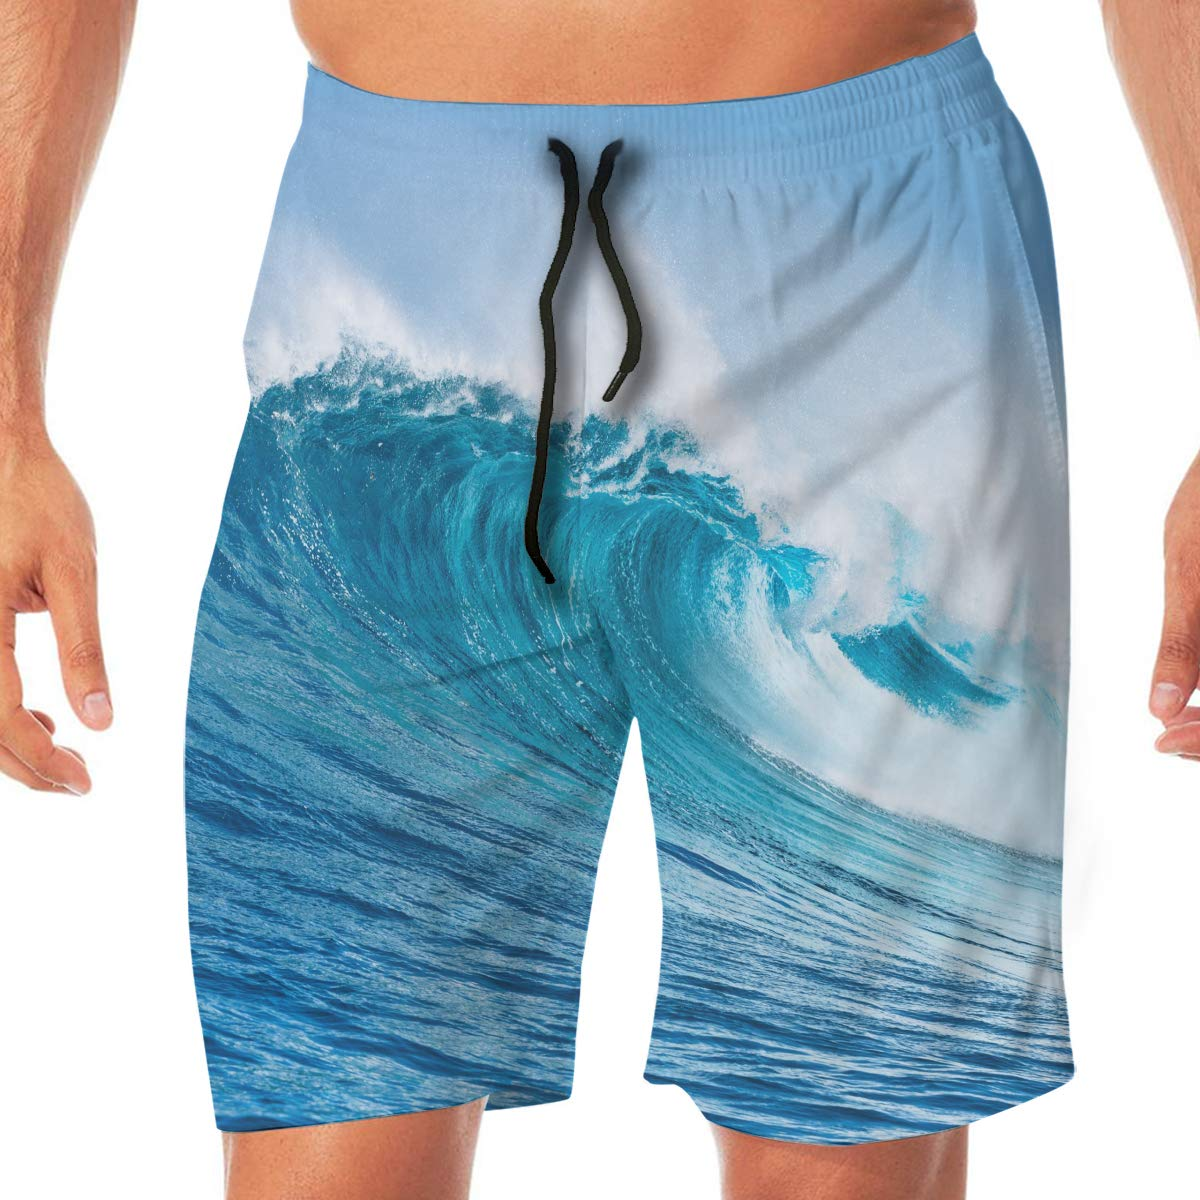 Ocean Surface Wave Mens Beach Shorts Chic Board Pants Adult Surf Beach Trunks Home Leisure Trousers